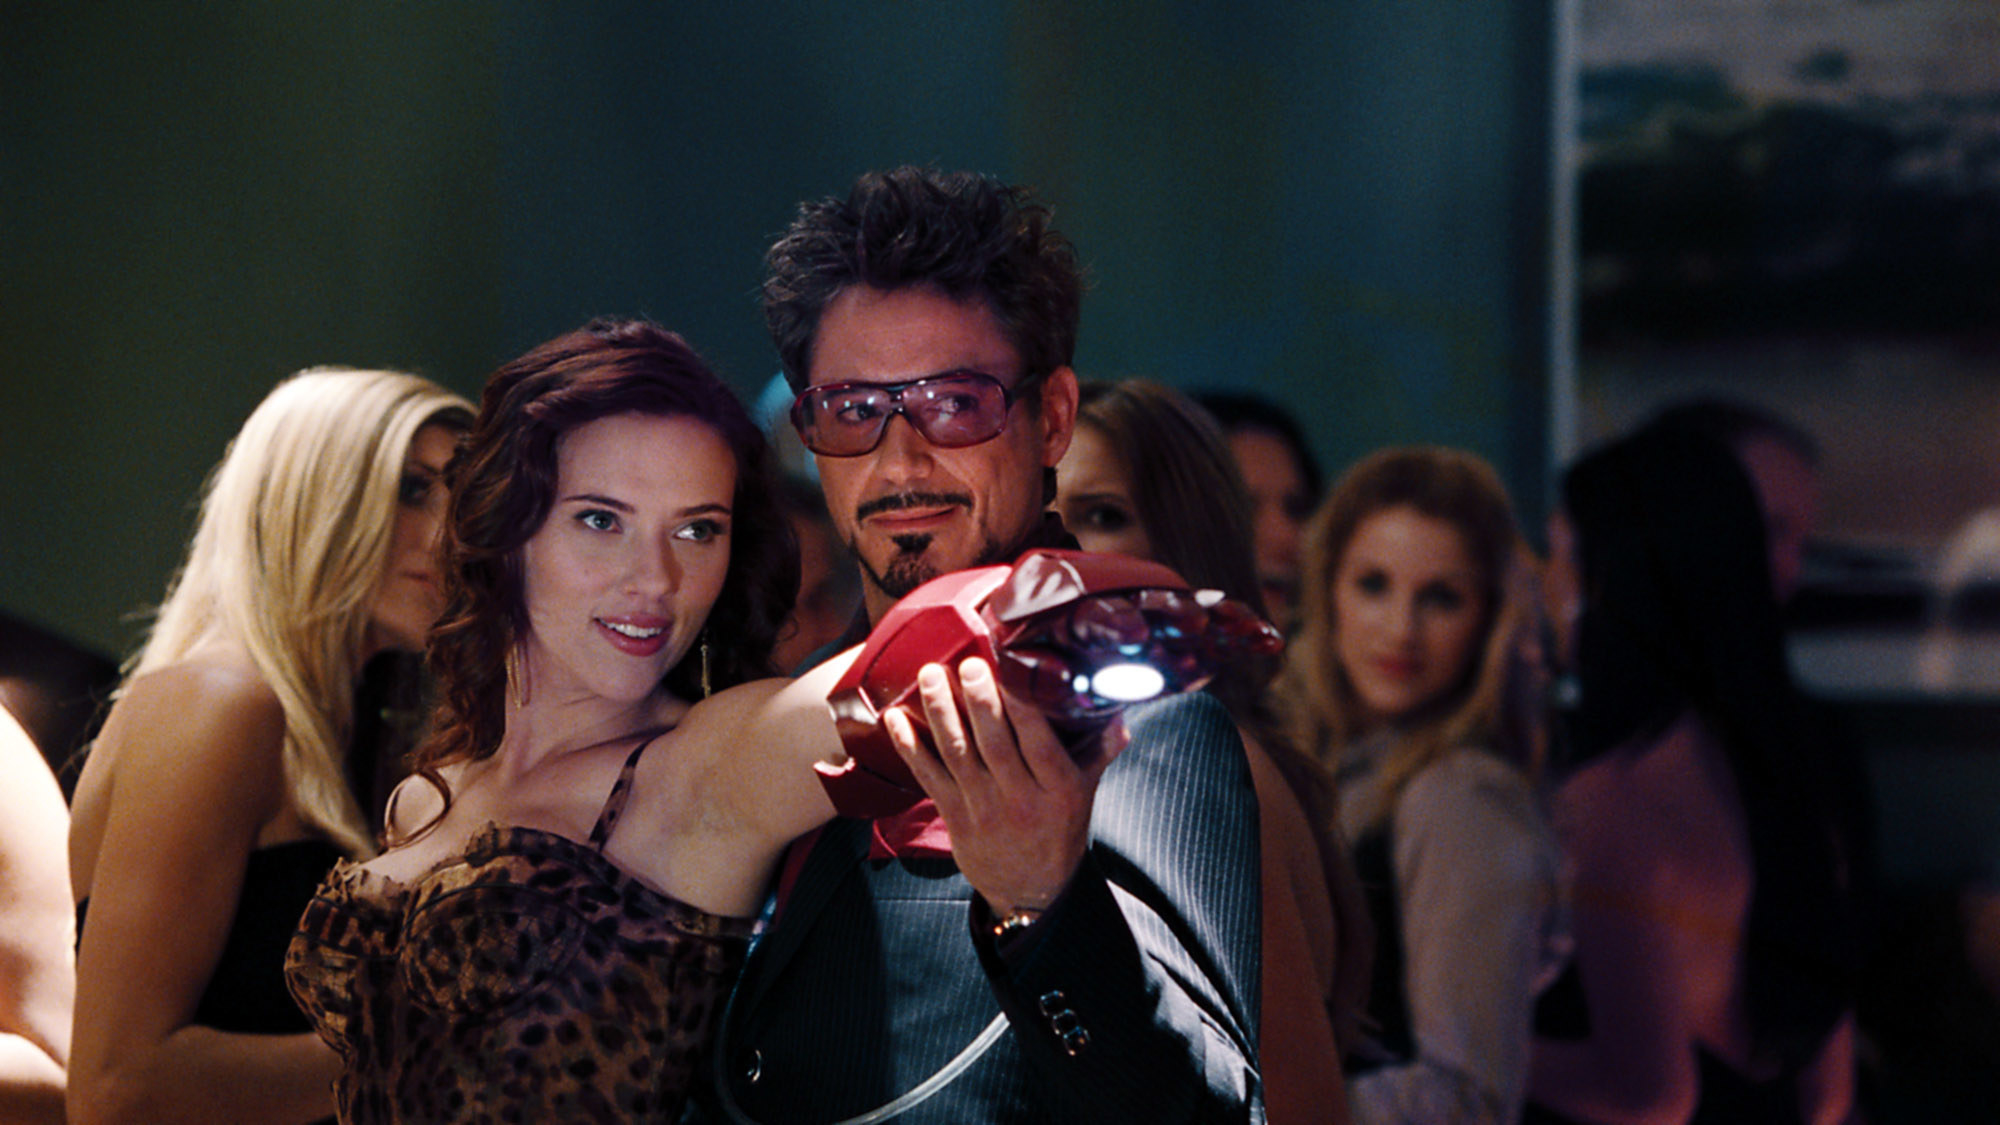 Scarlett and Robert Downey Jr. in a scene from Iron Man 2